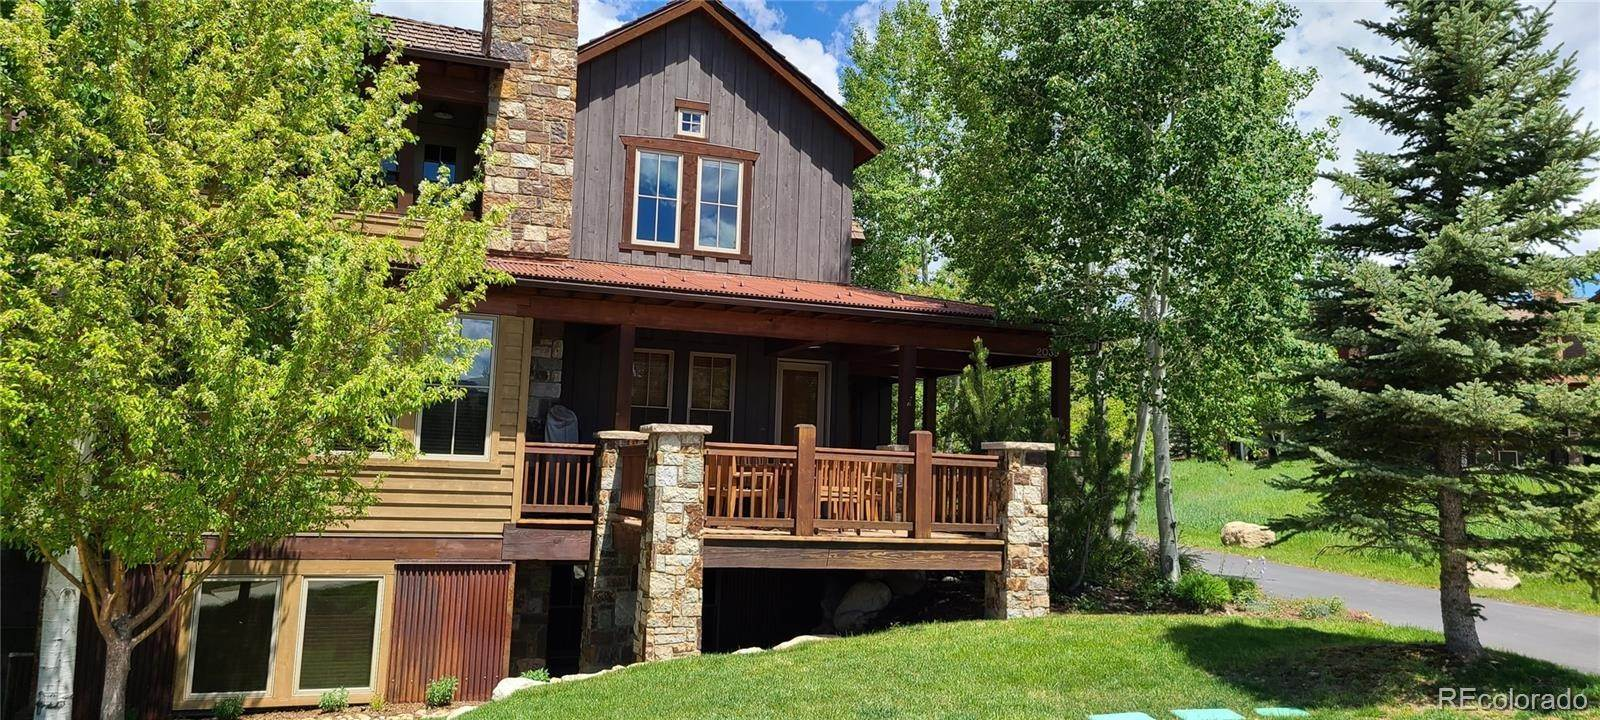 Single Family Homes for Sale at 2039 Indian Summer Drive Steamboat Springs, Colorado 80487 United States